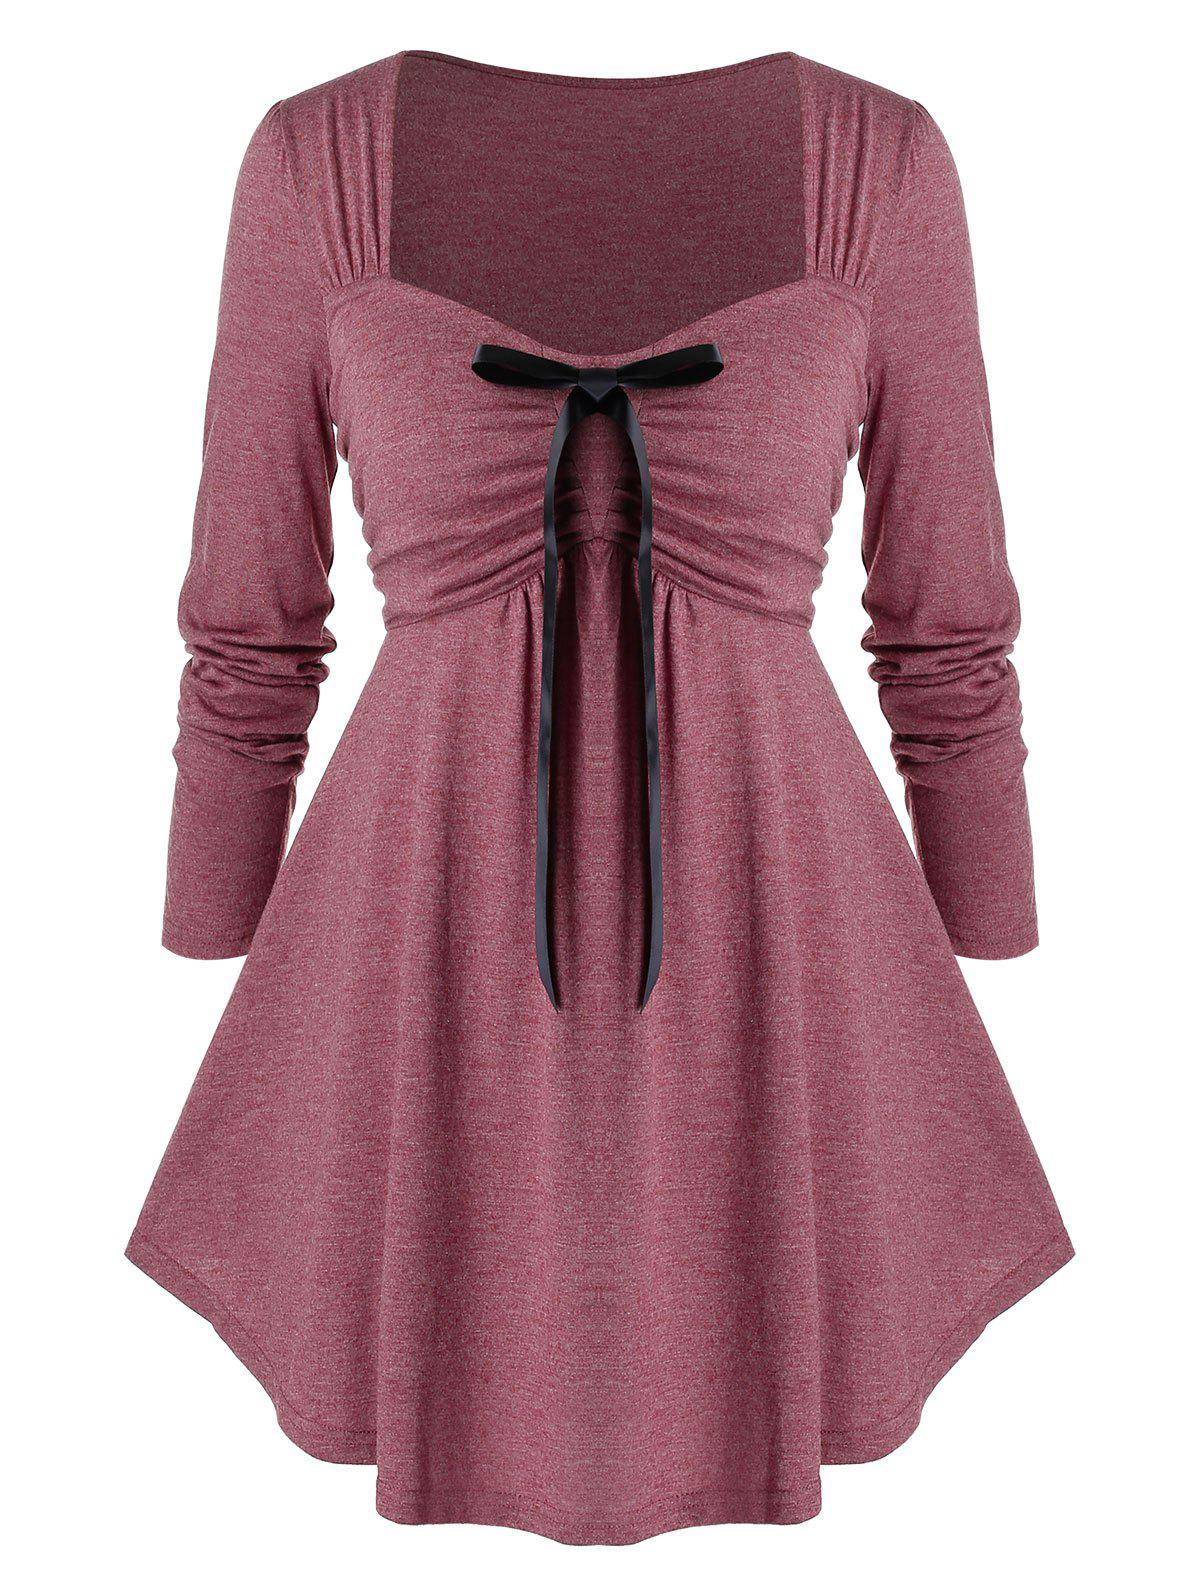 Plus Size Bowknot Ruched Empire Waist T Shirt - RED WINE L